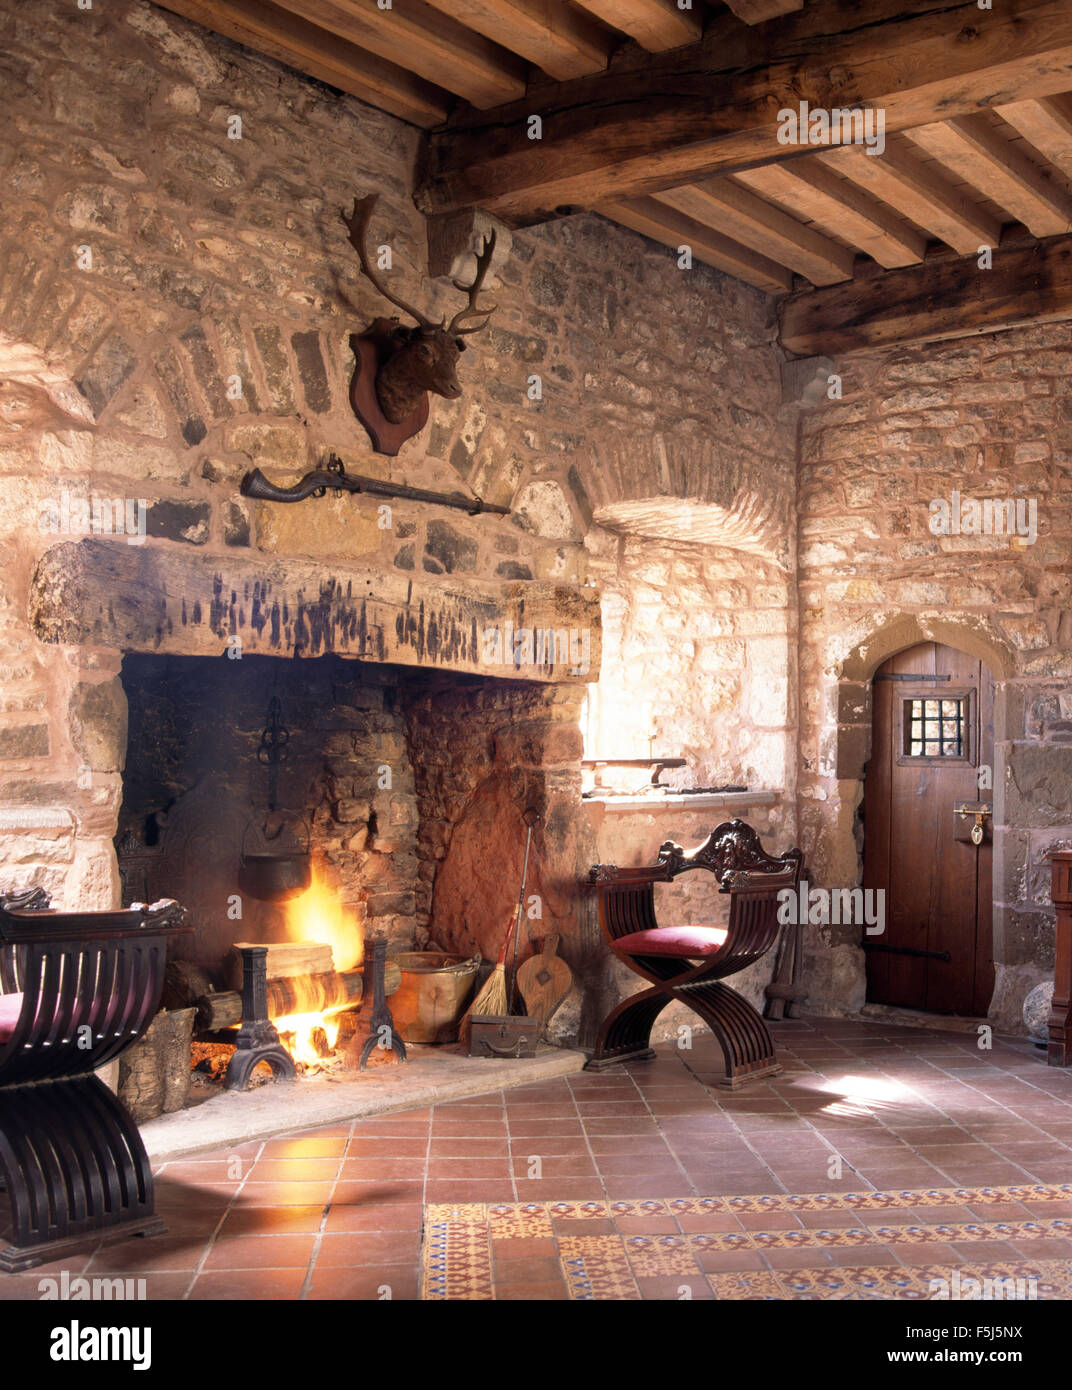 Lighted Fire In Fireplace In A Medieval Style Hall In